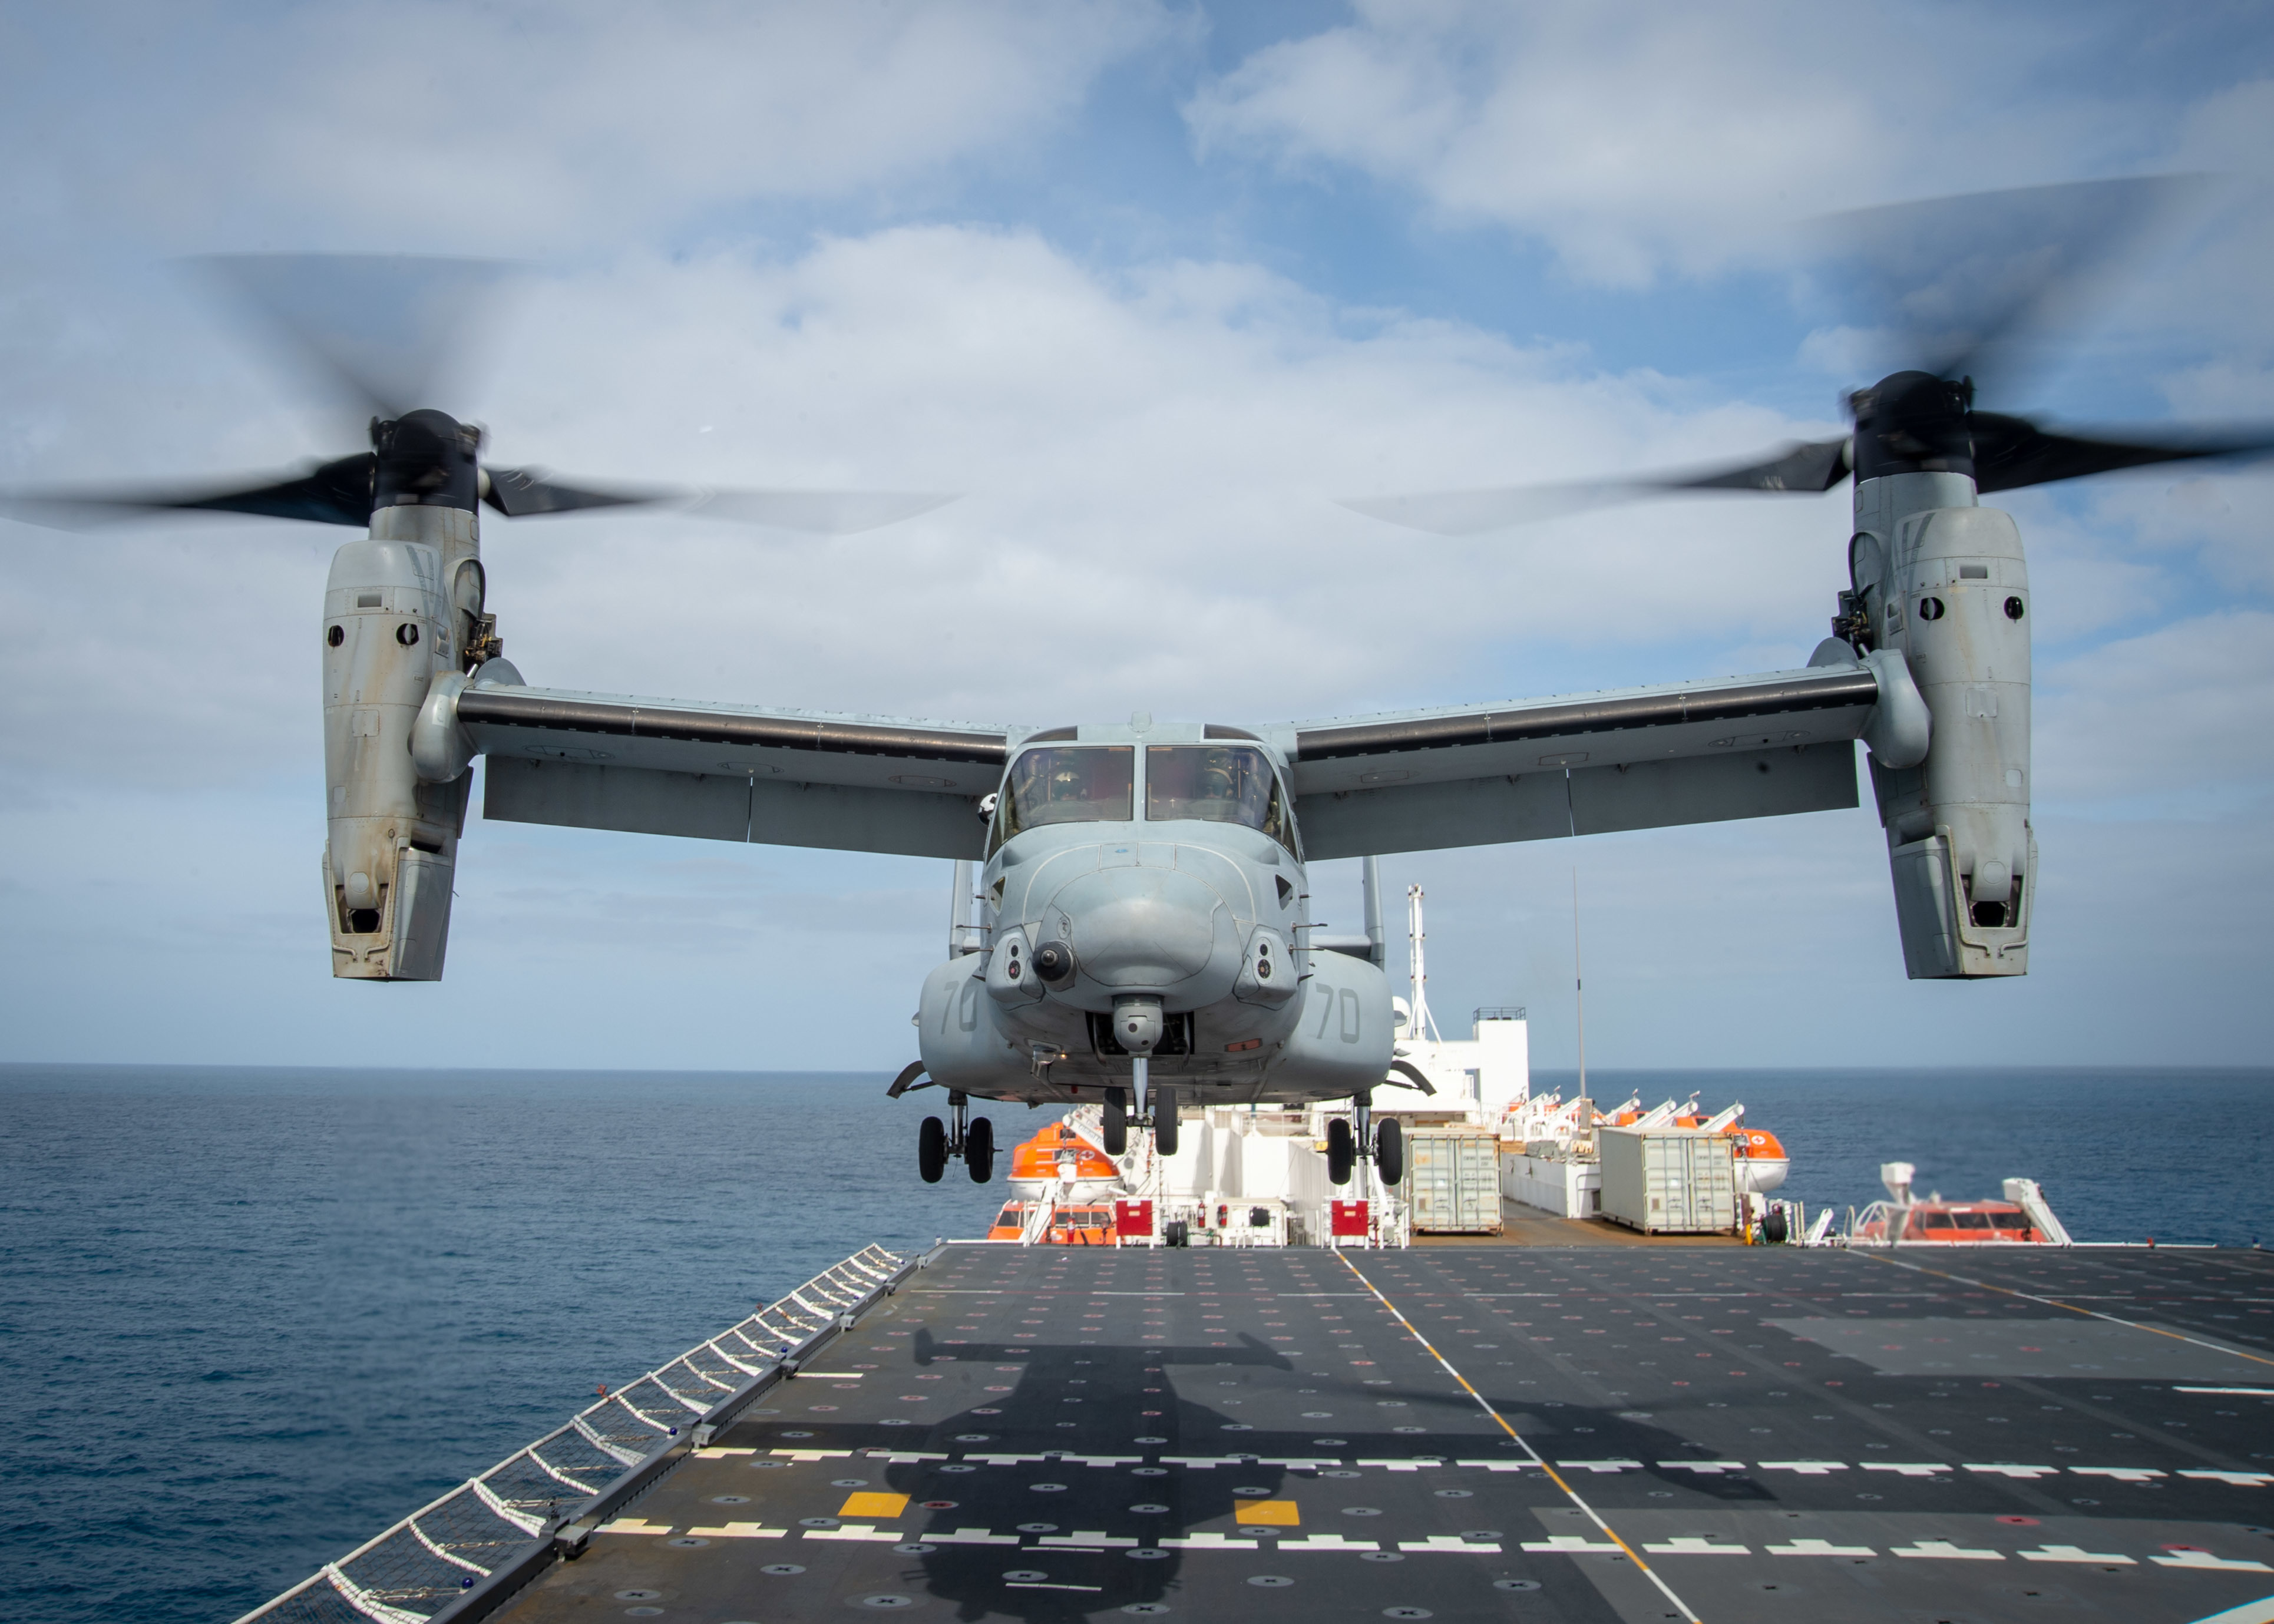 An MV-22B Osprey assigned to Air Test and Evaluation (HX) Squadron 21 of Naval Air Station (NAS) Patuxent River, Md., takes off from Military Sealift Command hospital ship USNS Mercy's (T-AH 19) flight deck.